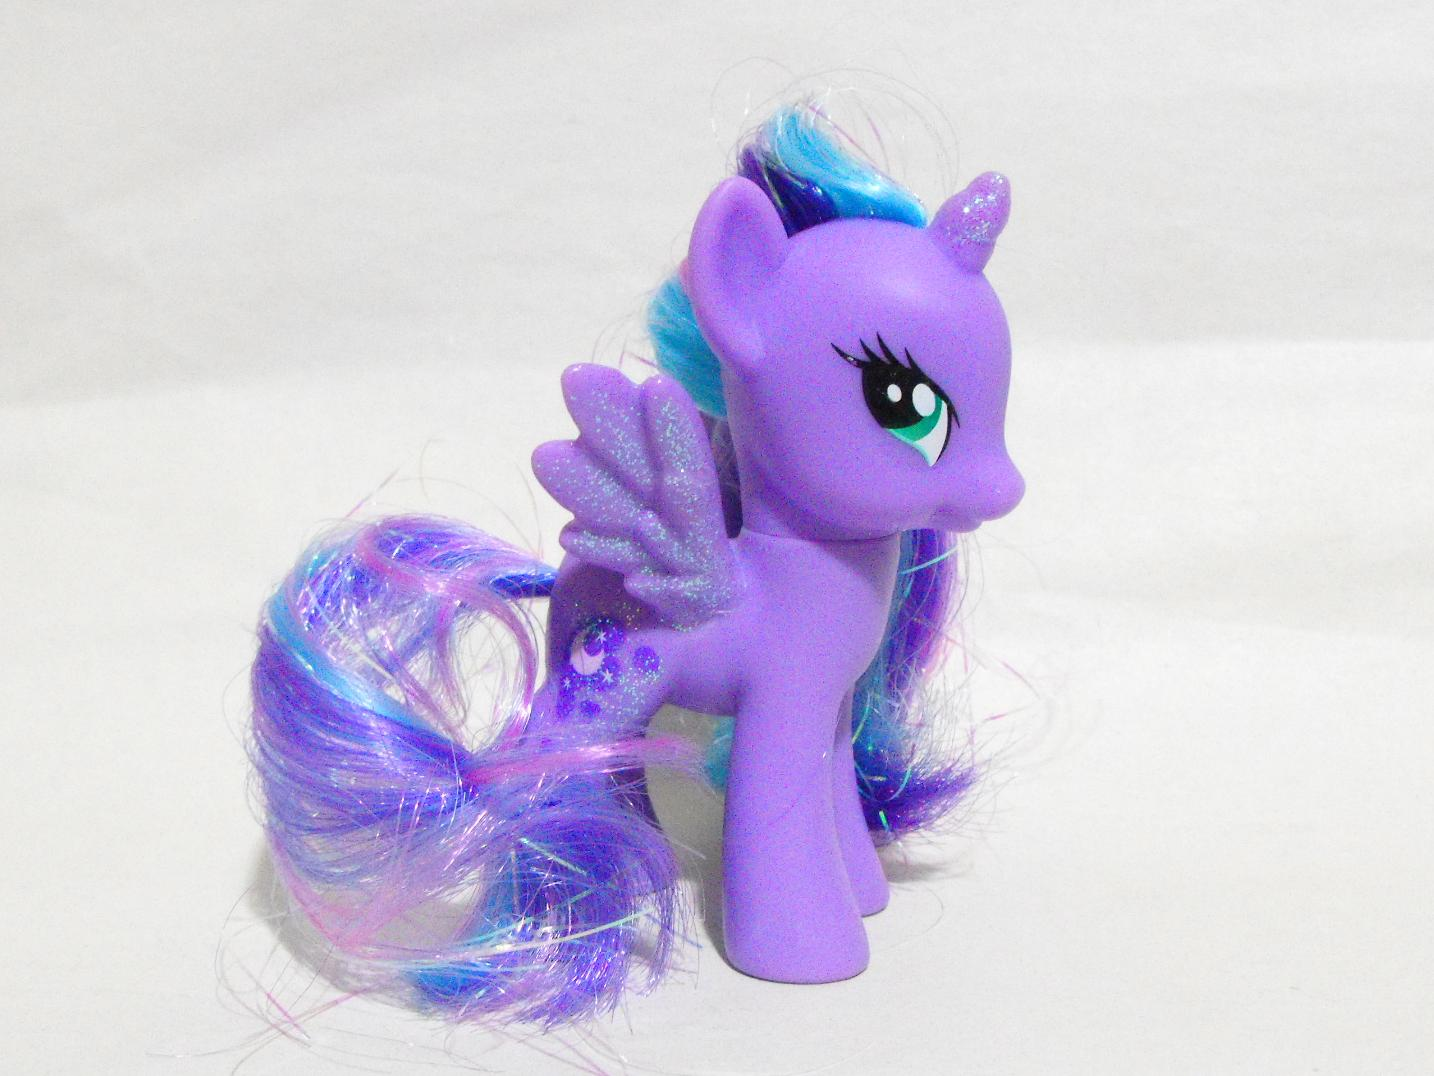 My Little Pony Toys : Image princess luna playful ponies toy g my little